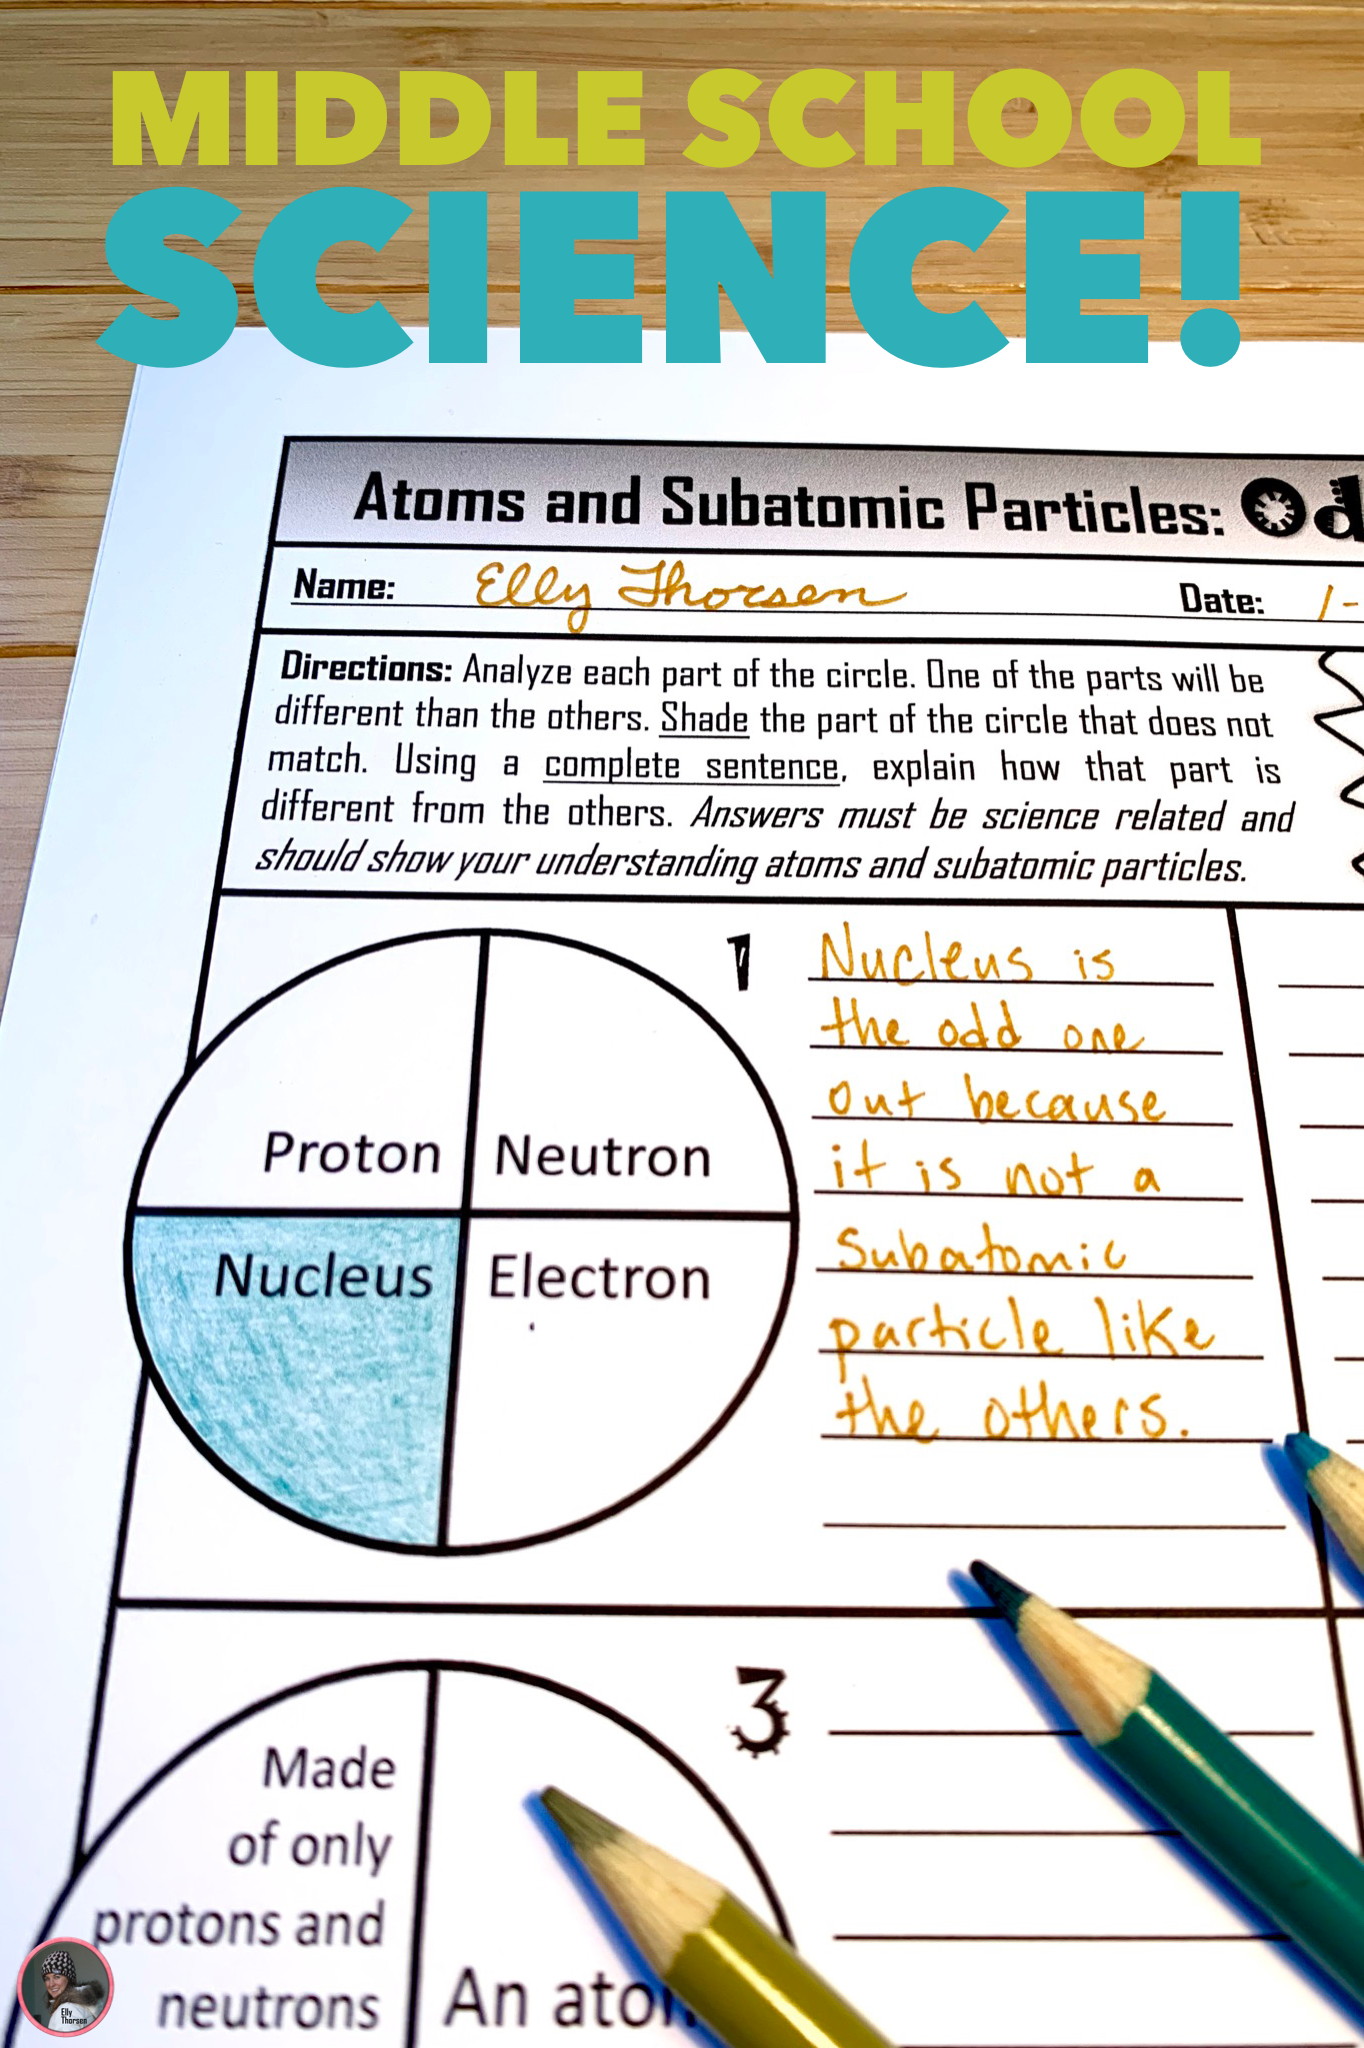 small resolution of Atoms and Subatomic Particles Critical Thinking Worksheet for Middle School  Physical Science in 2020   Physical science middle school